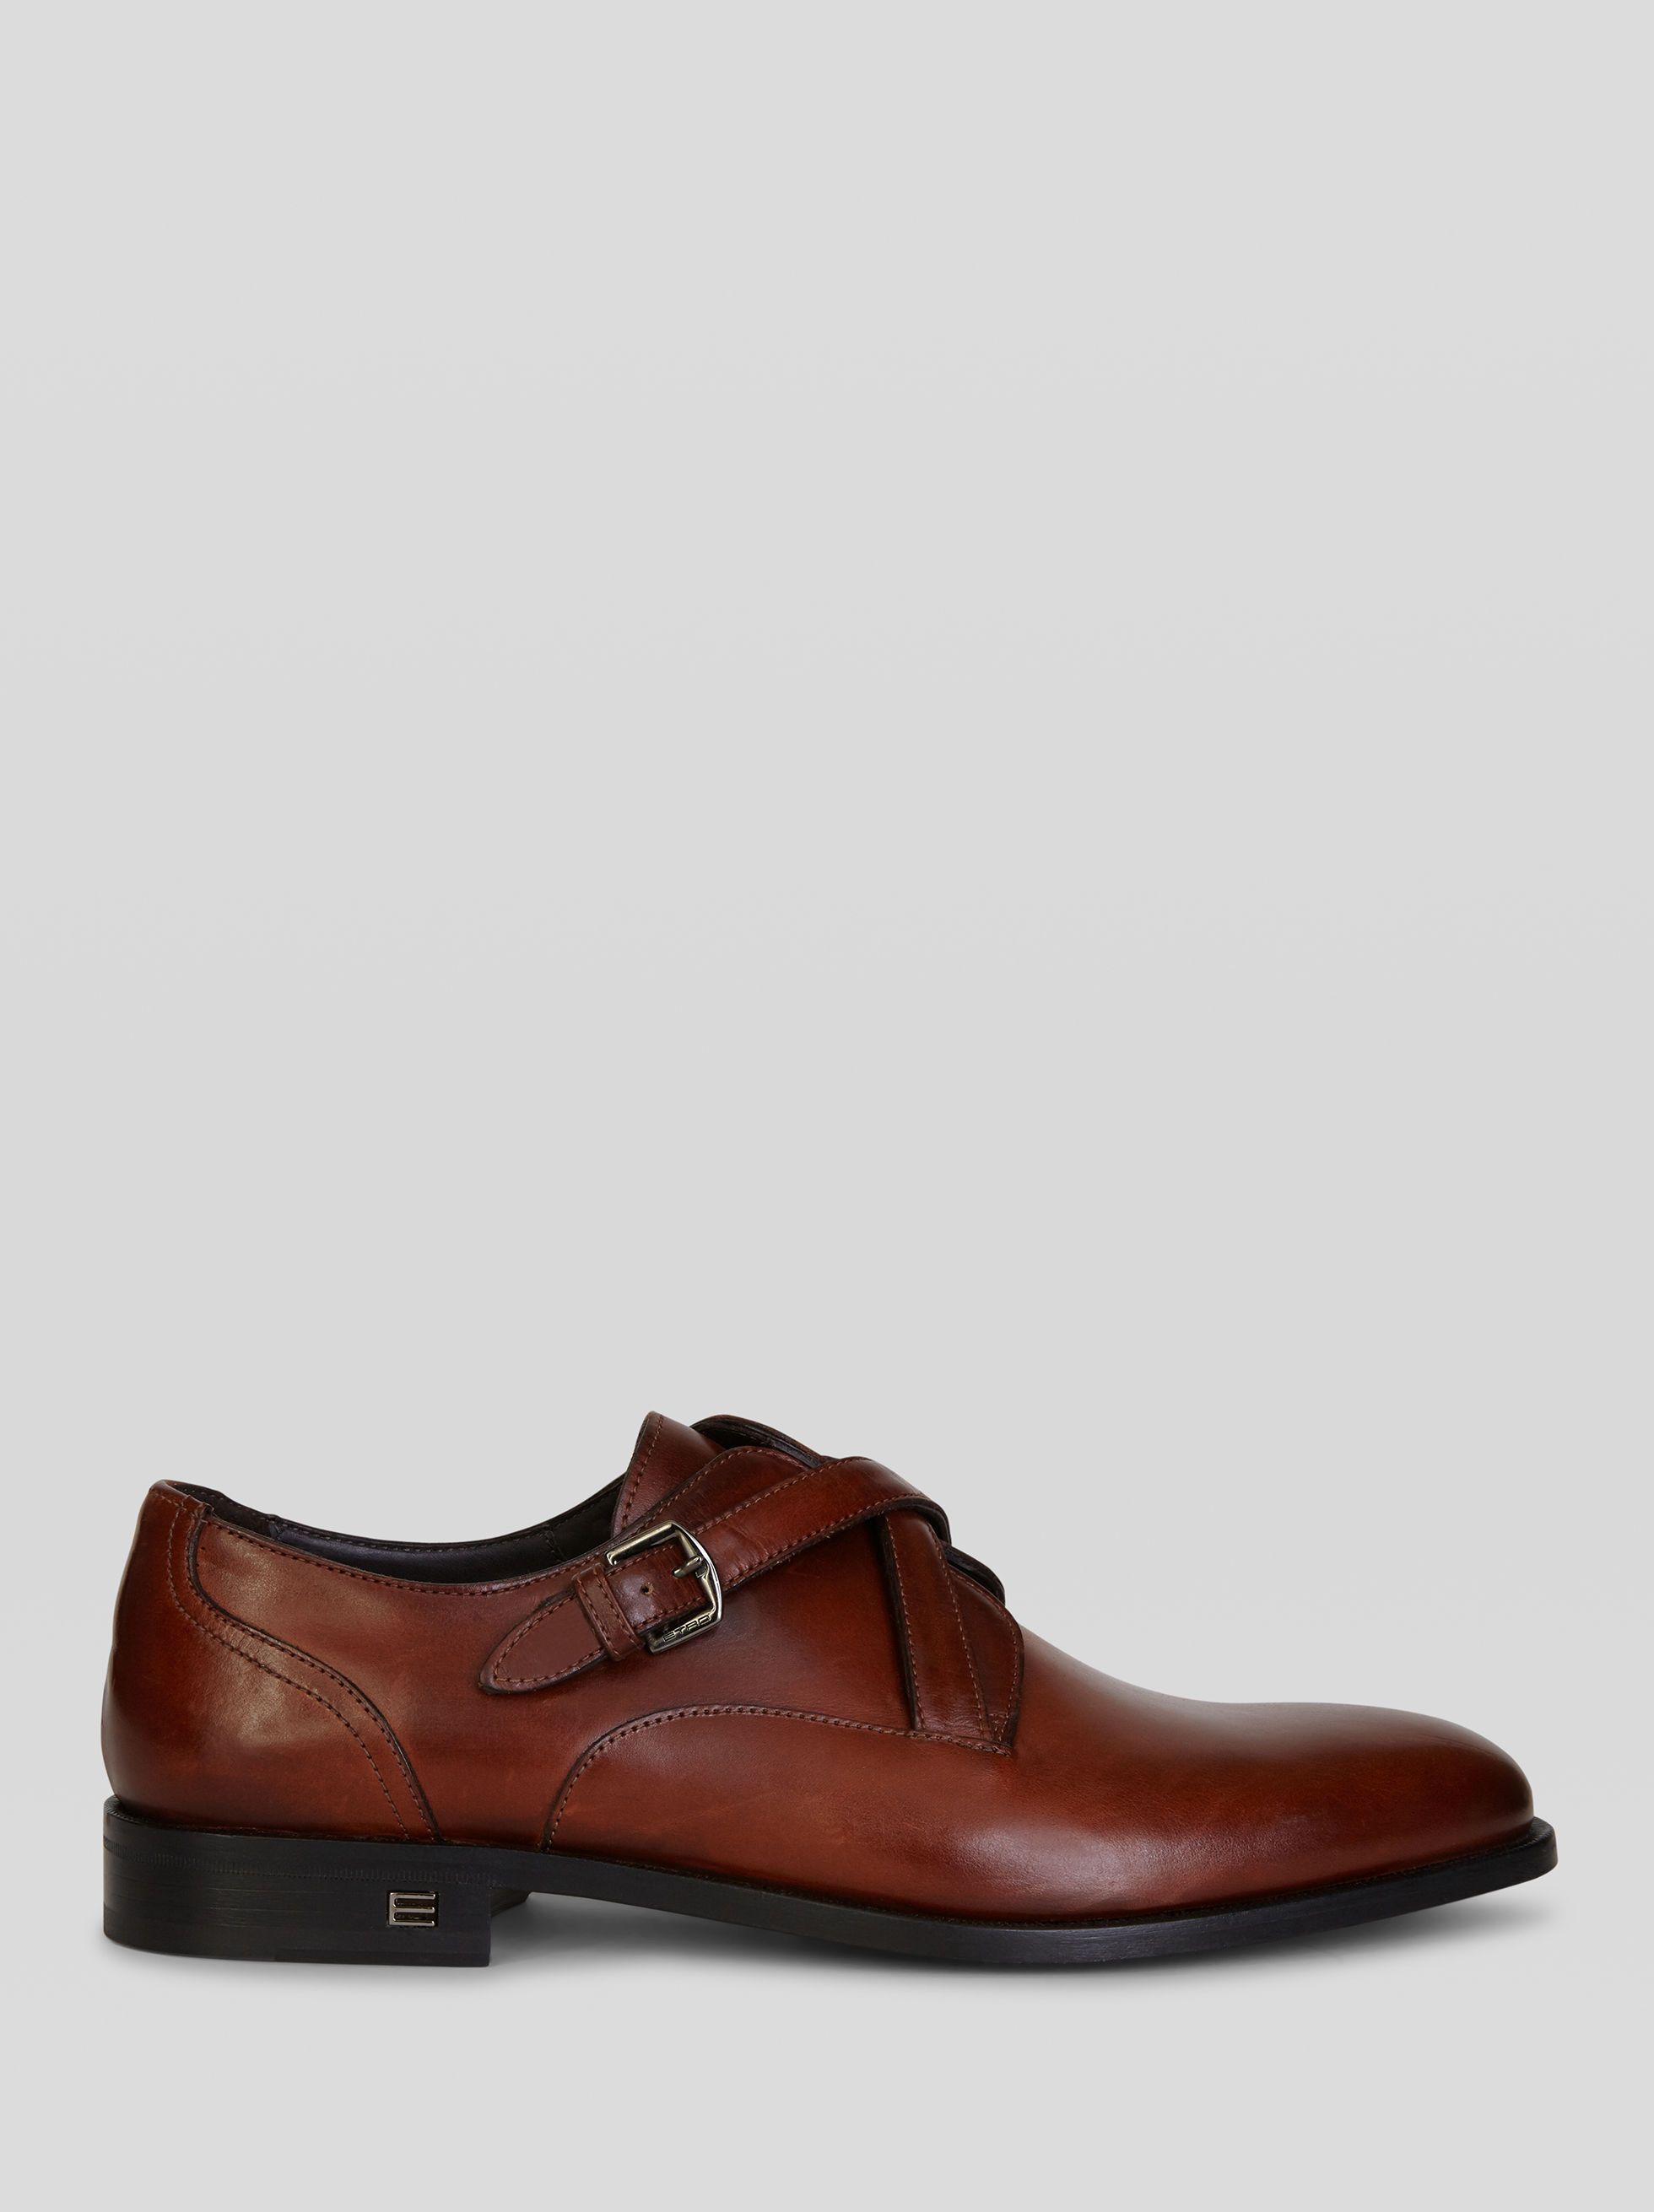 LEATHER MONK STRAPS